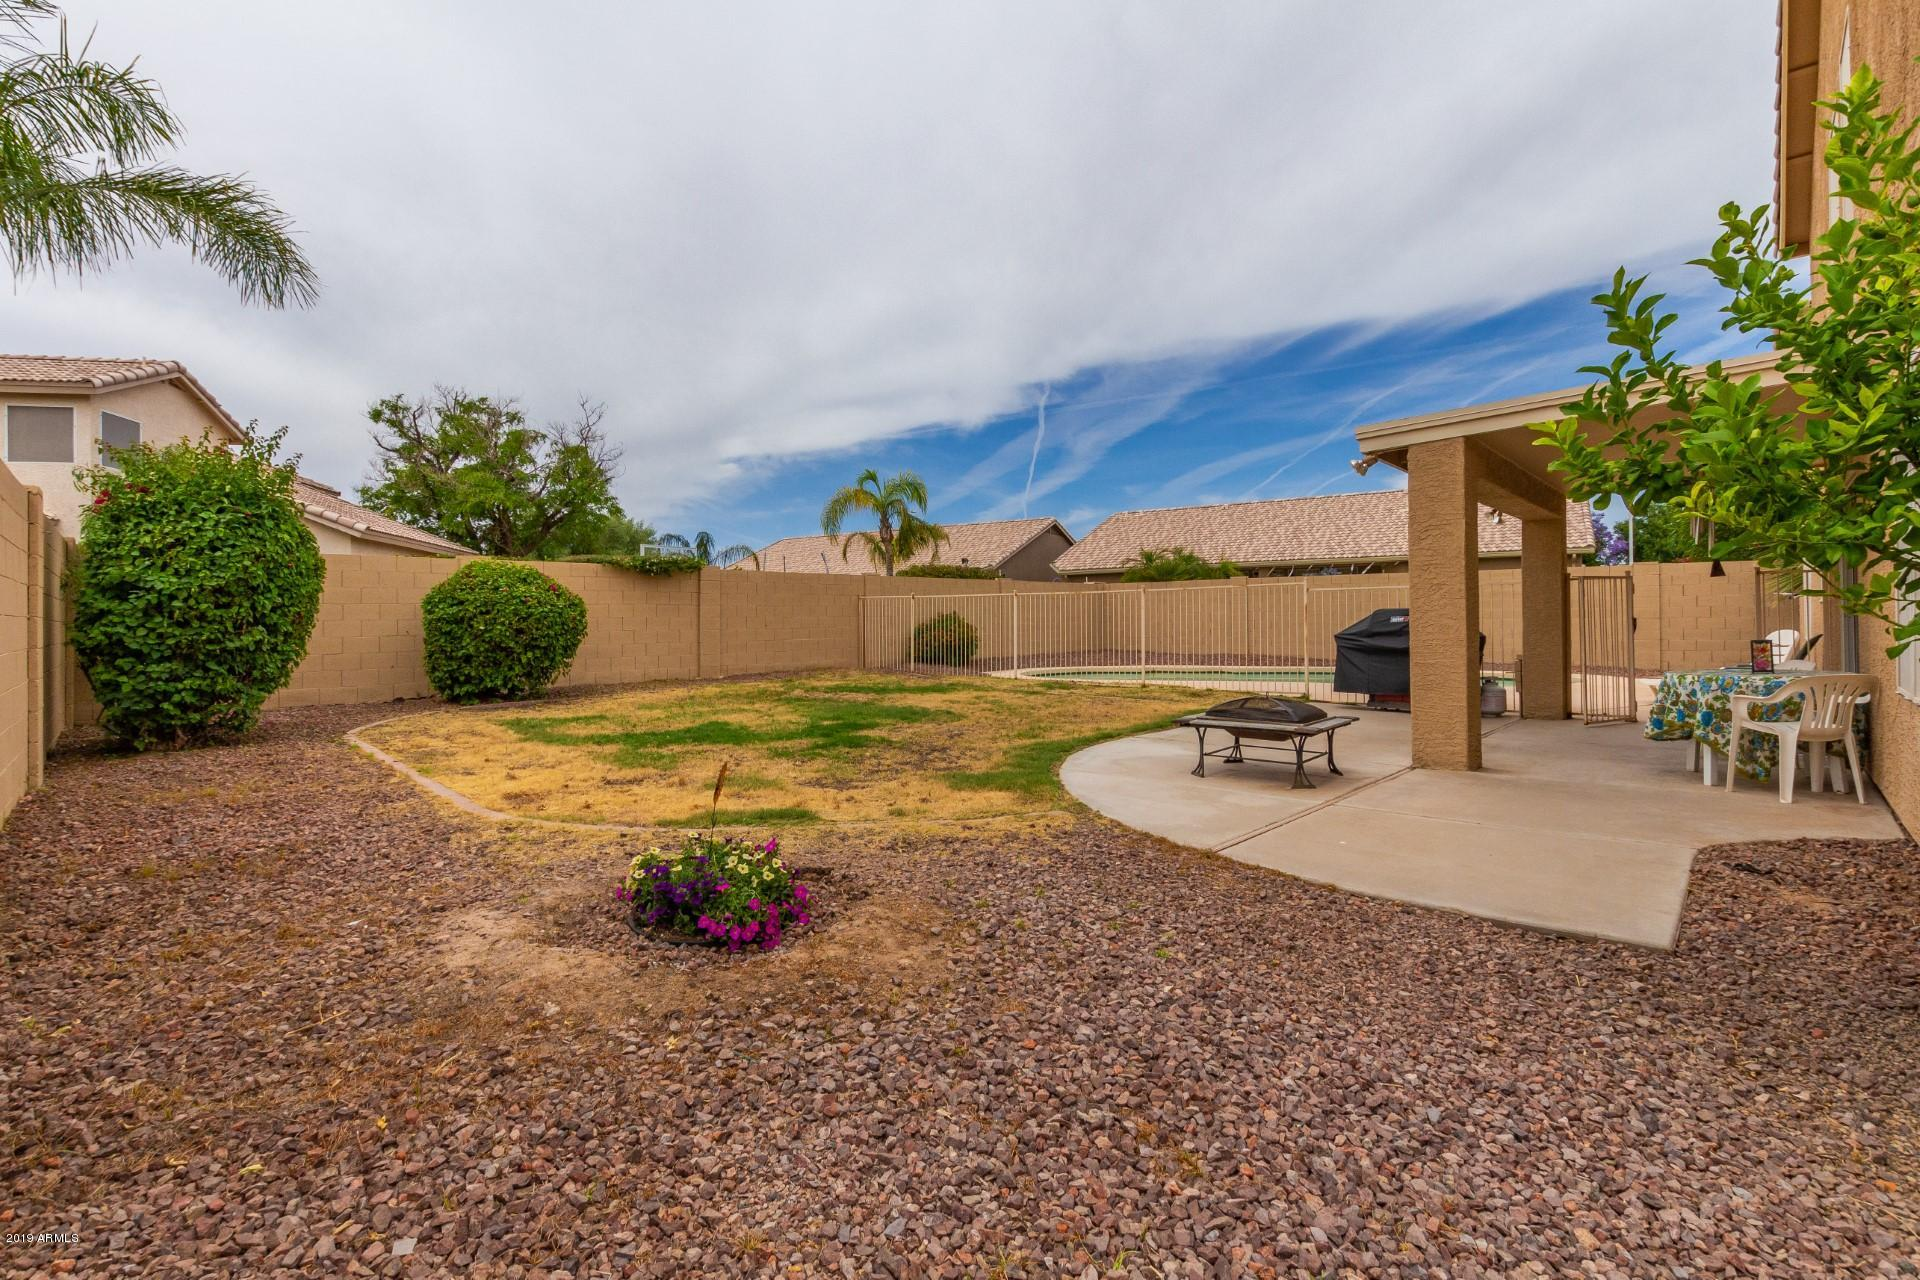 MLS 5922244 752 N LISBON Drive, Chandler, AZ 85226 Chandler AZ Darcy Ranch